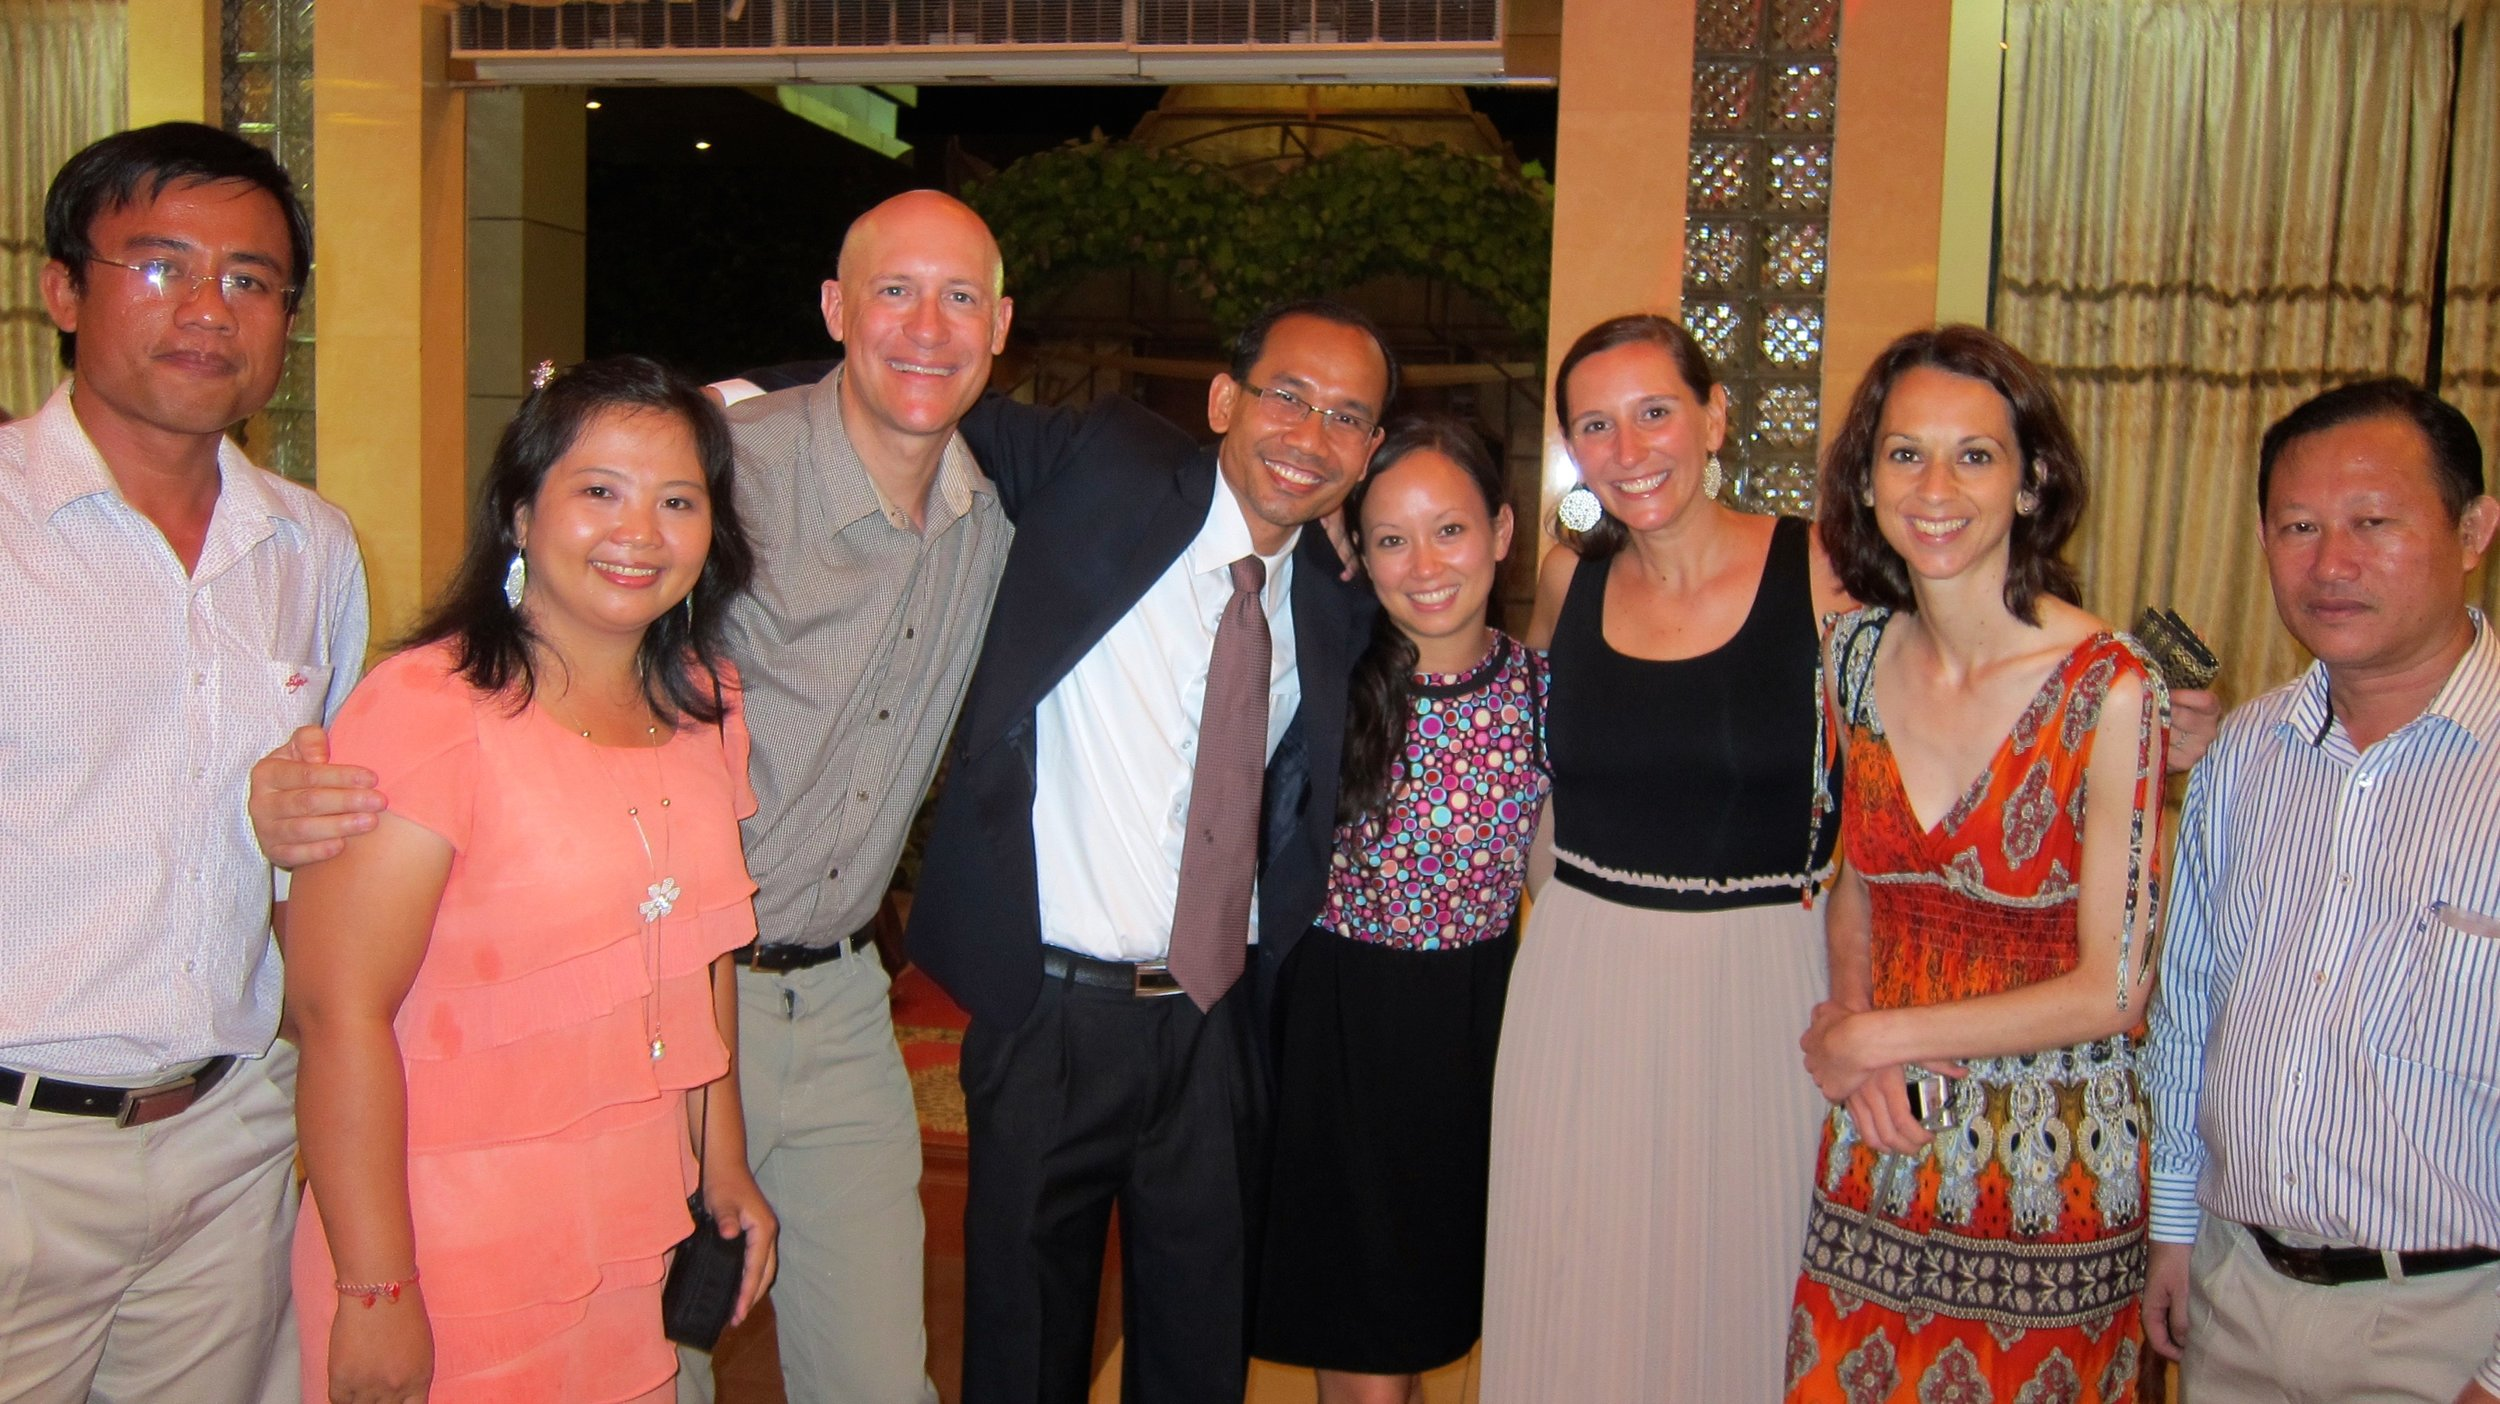 Dave and I with some of my NGO colleagues and friends.